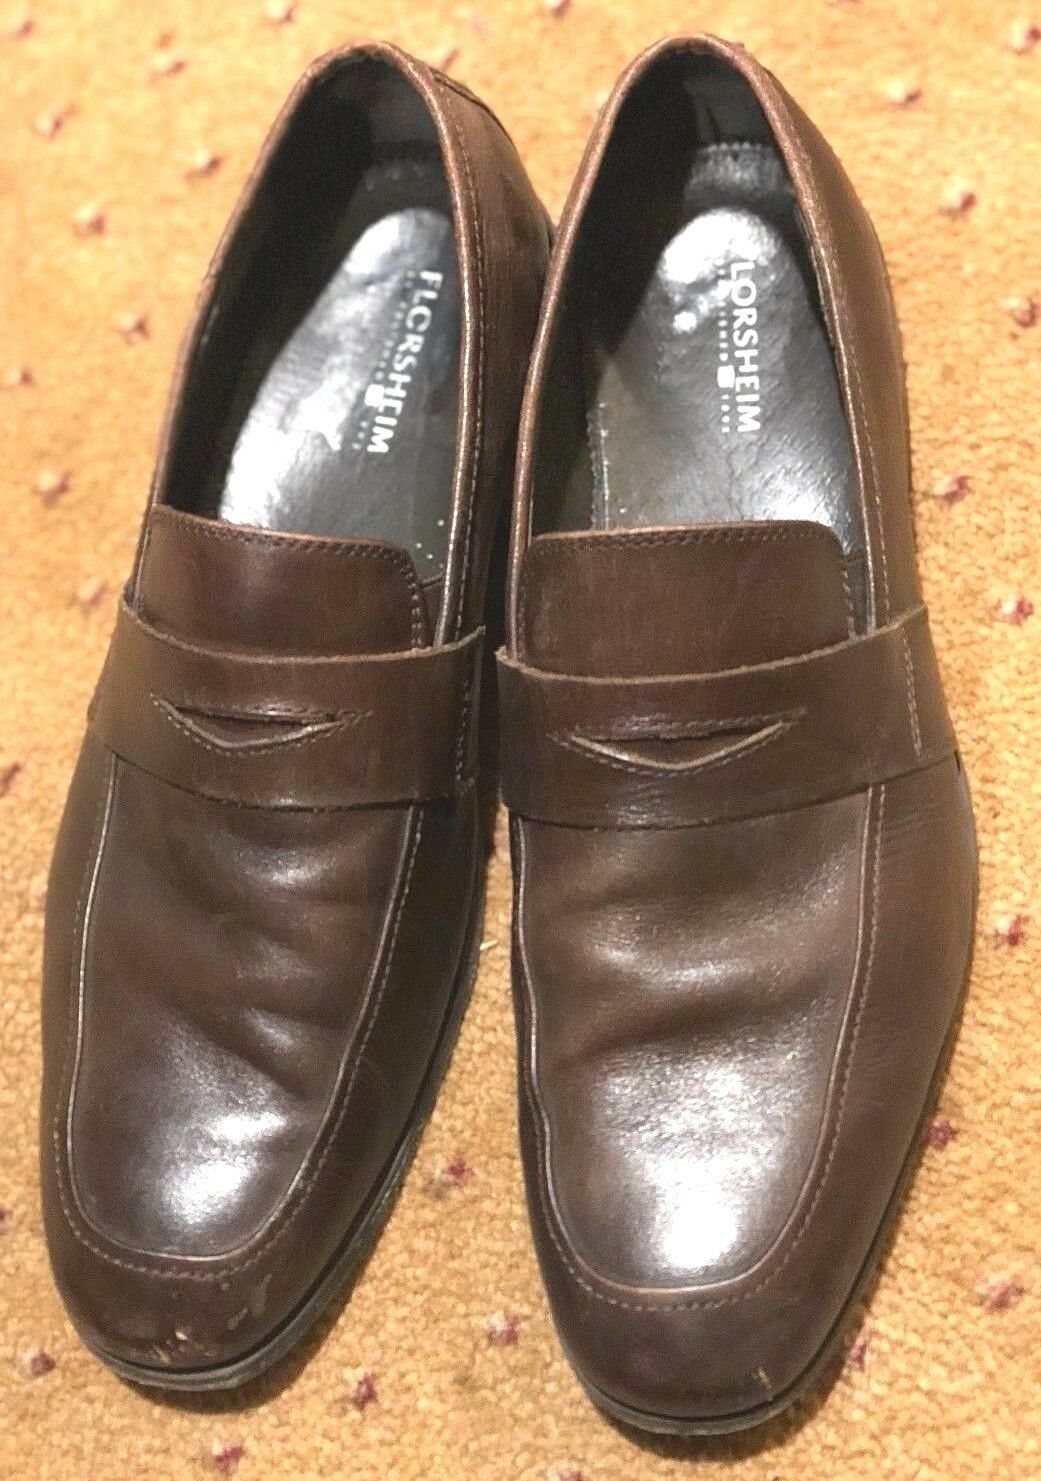 Florsheim Shoes 11 Penny Loafers Wingtip Men's 11 Shoes D Hickory Brown Leather 2b4955